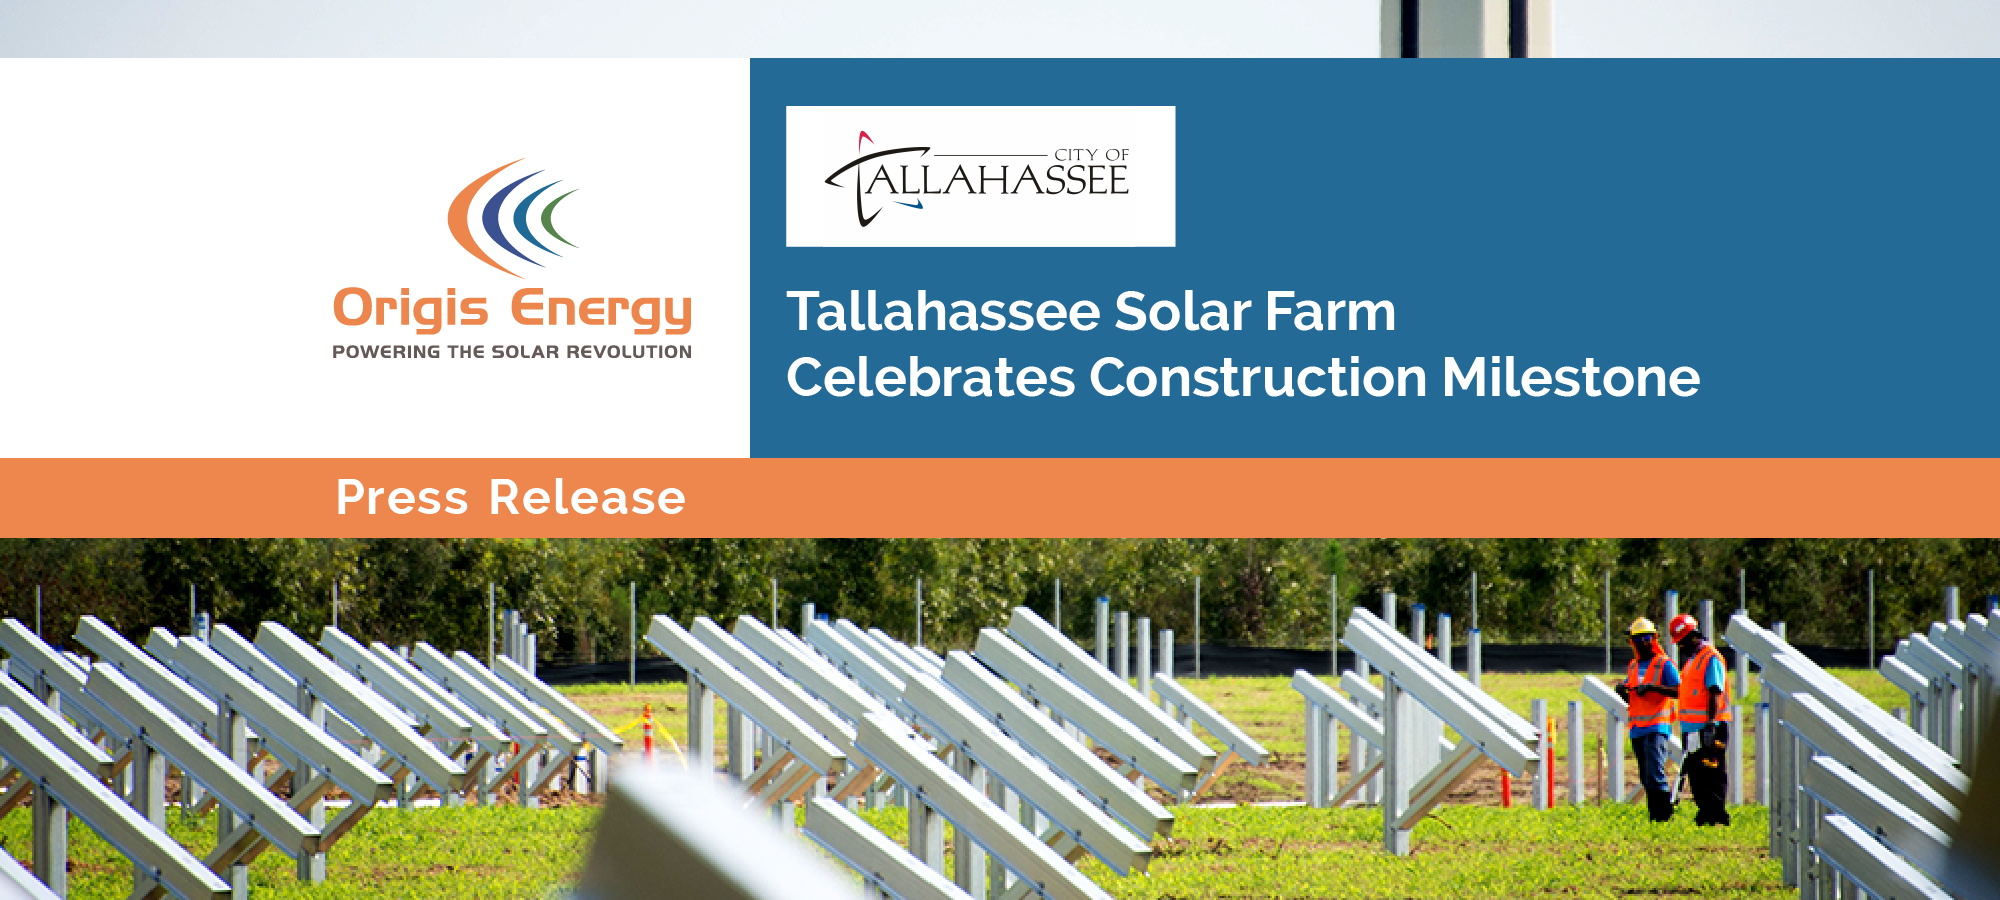 Tallahassee Solar Farm Celebrates Construction Milestone